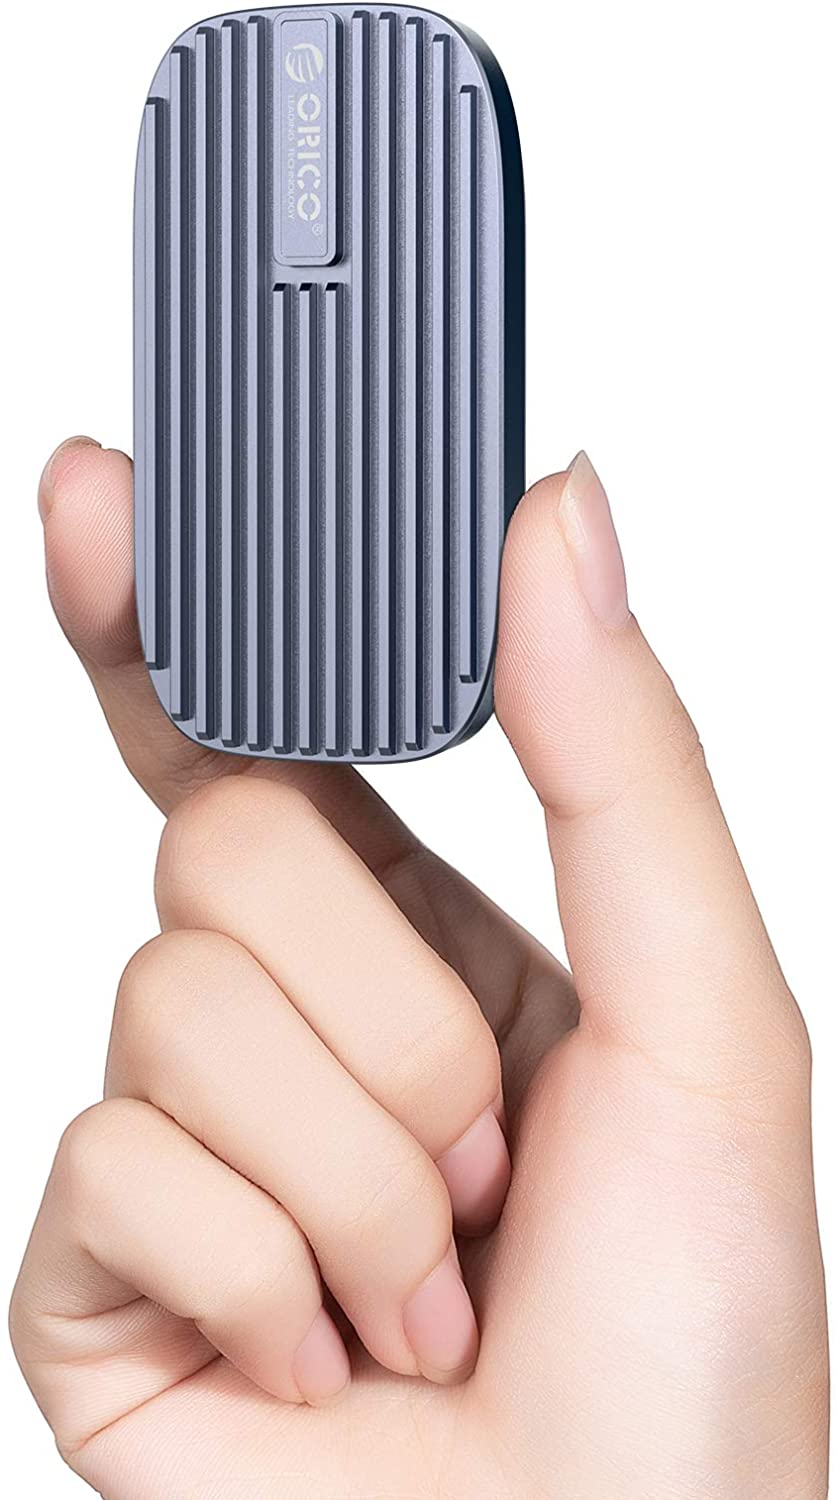 ORICO 480GB Portable SSD USB Discount mail order 3.1 Drive State Max 77% OFF External t Solid up